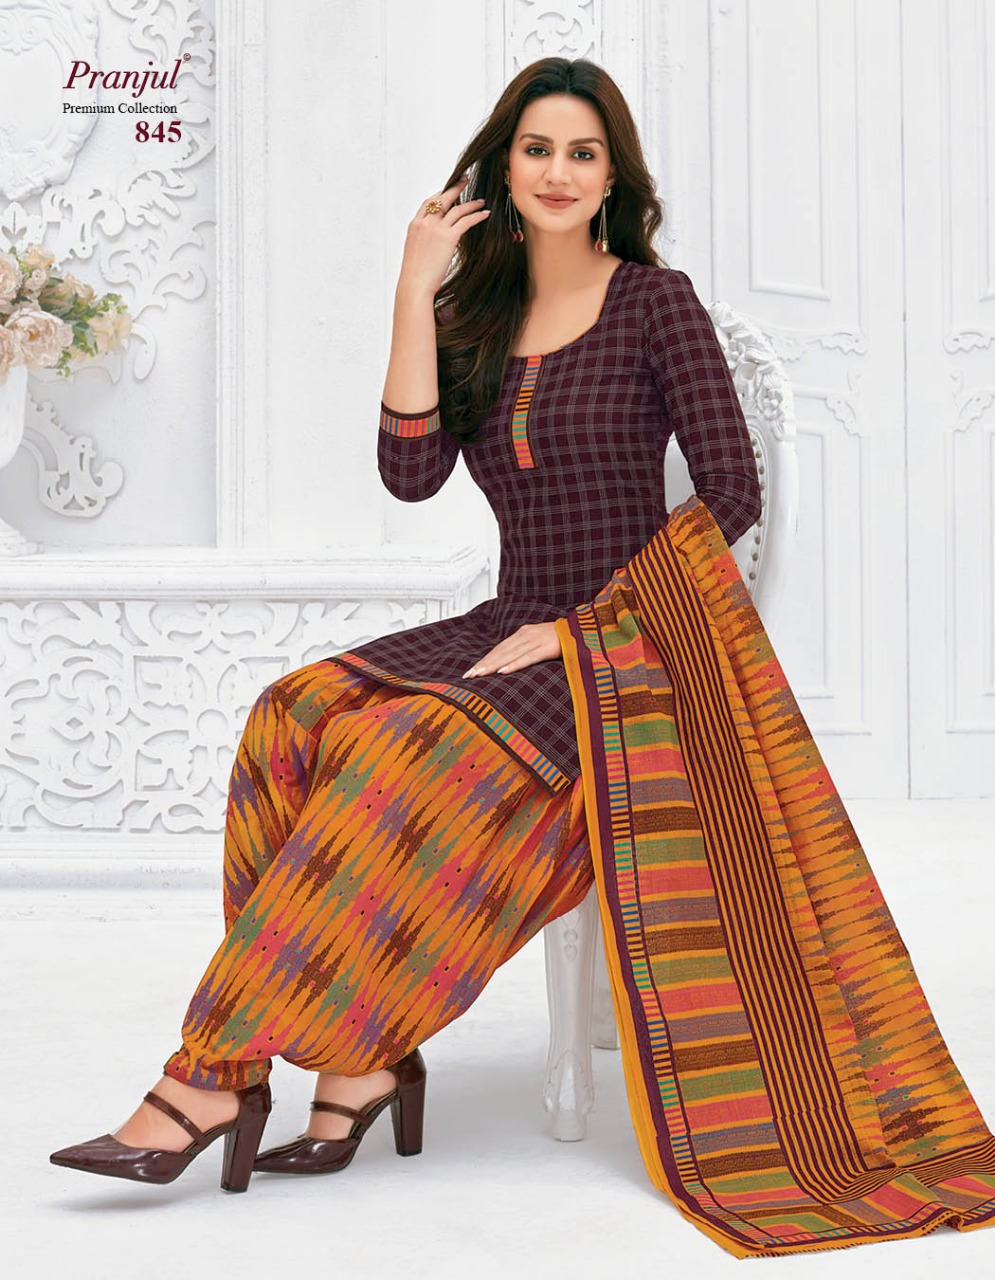 Pranjul Priyanka Vol 8 A Readymade Suit Wholesale Catalog 15 Pcs 22 - Pranjul Priyanka Vol 8 A Readymade Suit Wholesale Catalog 15 Pcs